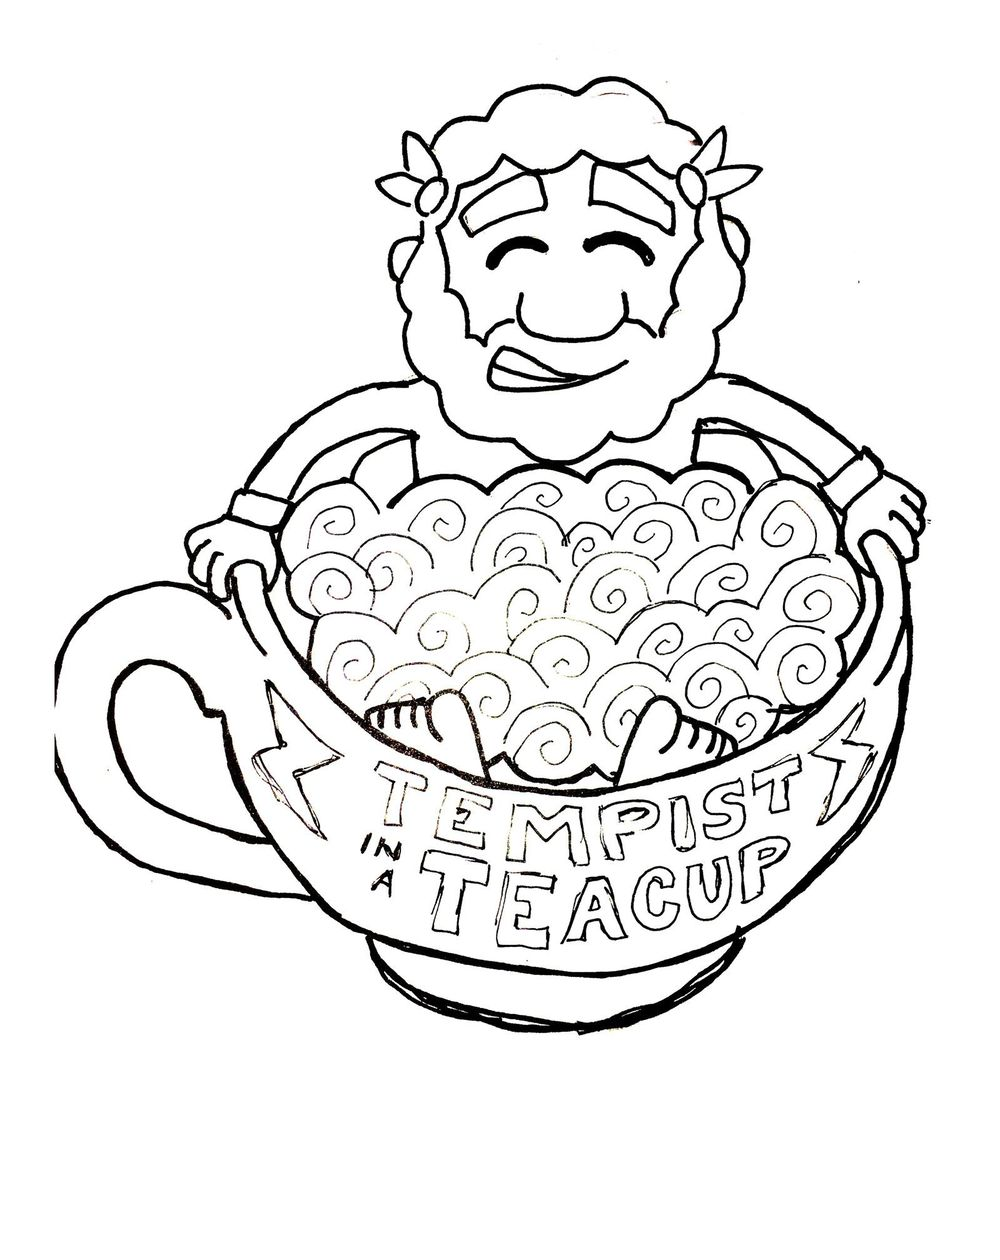 Tempest in a Teacup - image 2 - student project